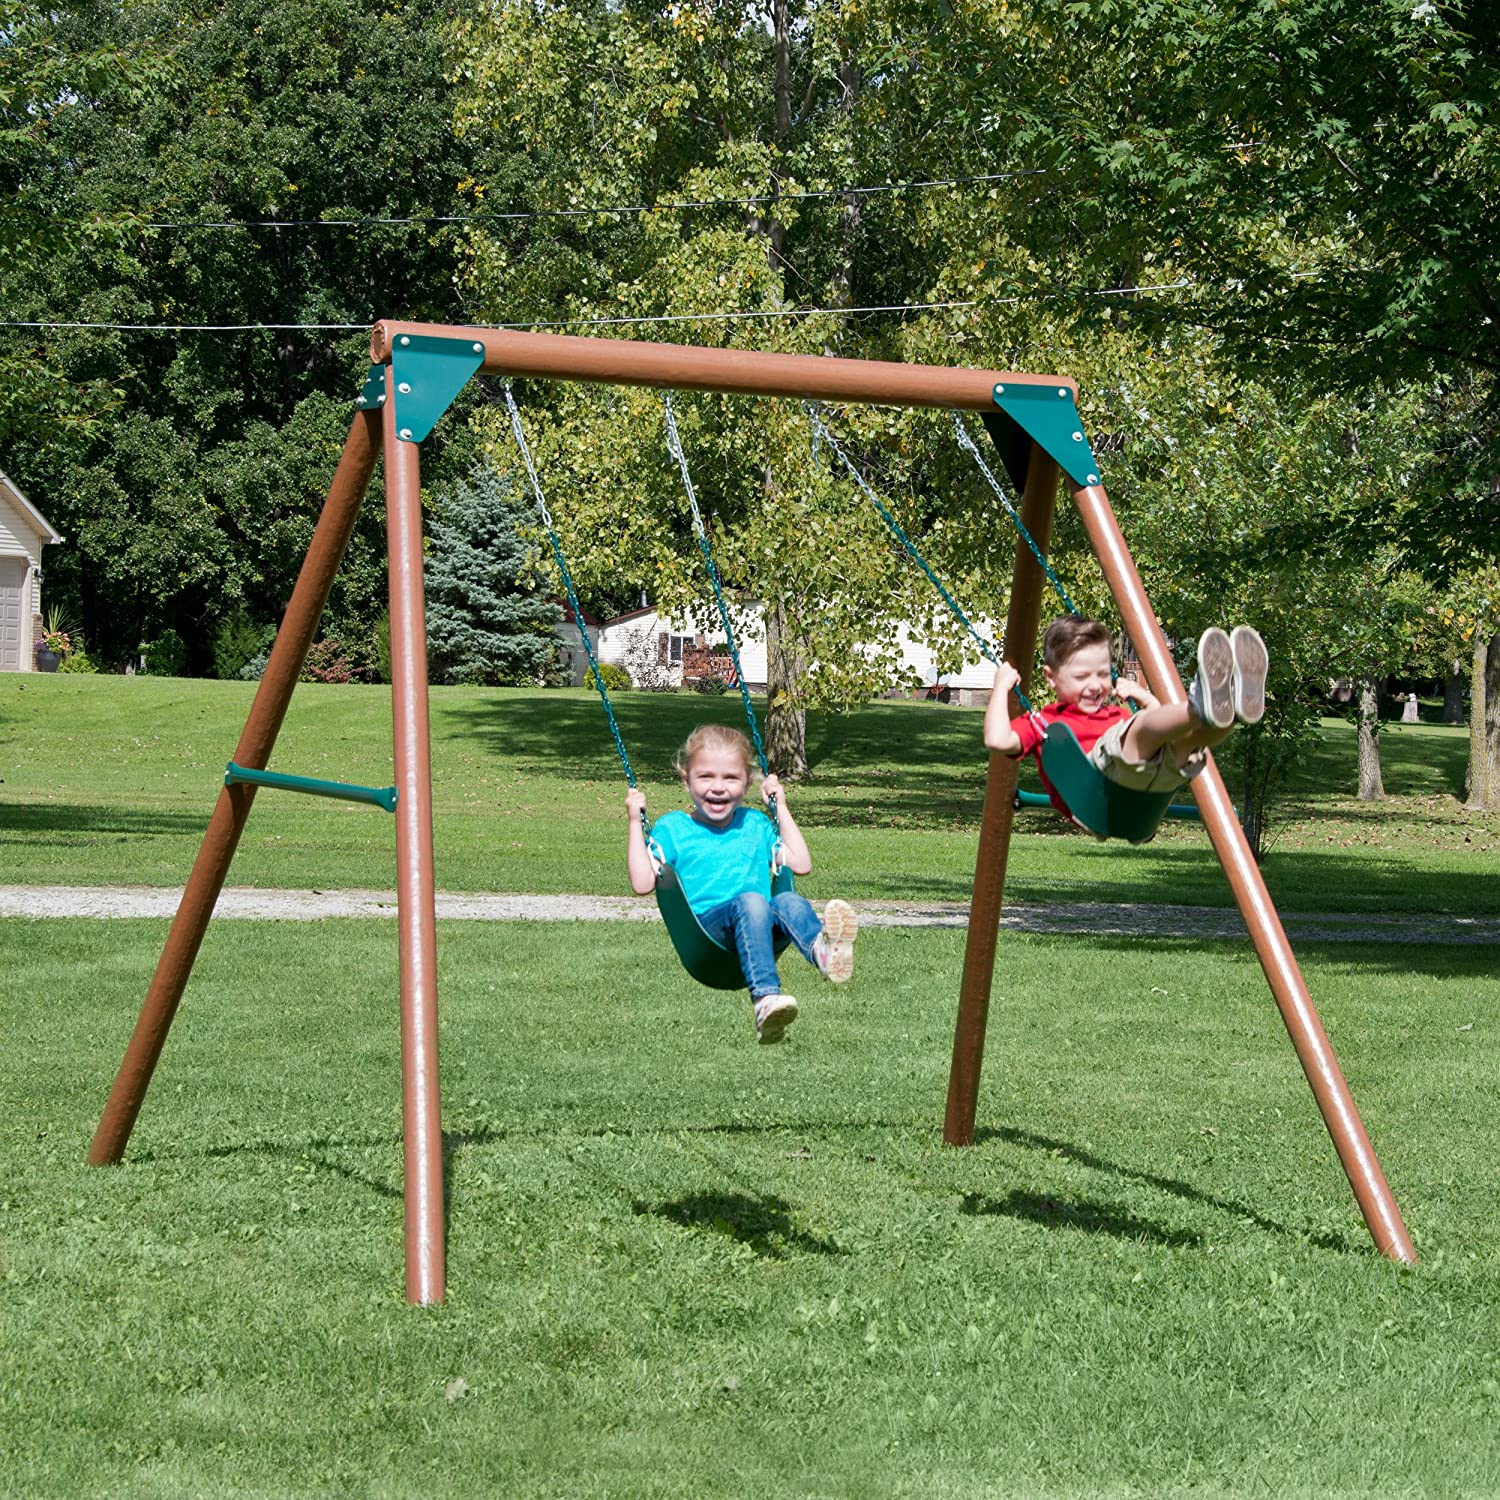 Amazon Equinox Swing Set Toys & Games